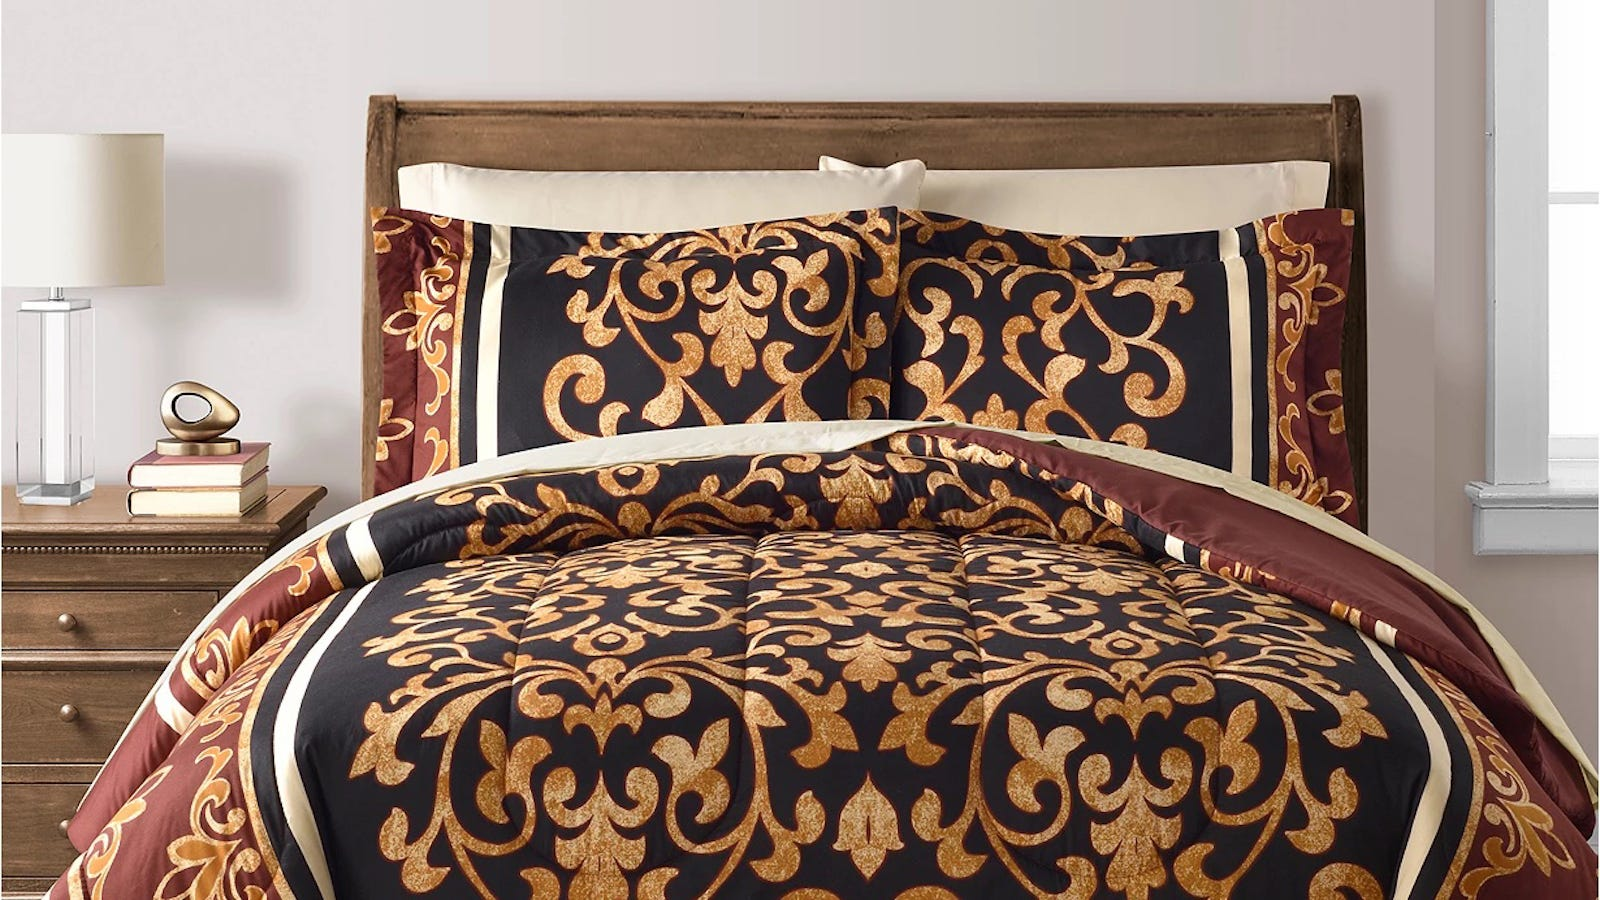 Macy s has top-rated comforter sets from as low as $30 right now